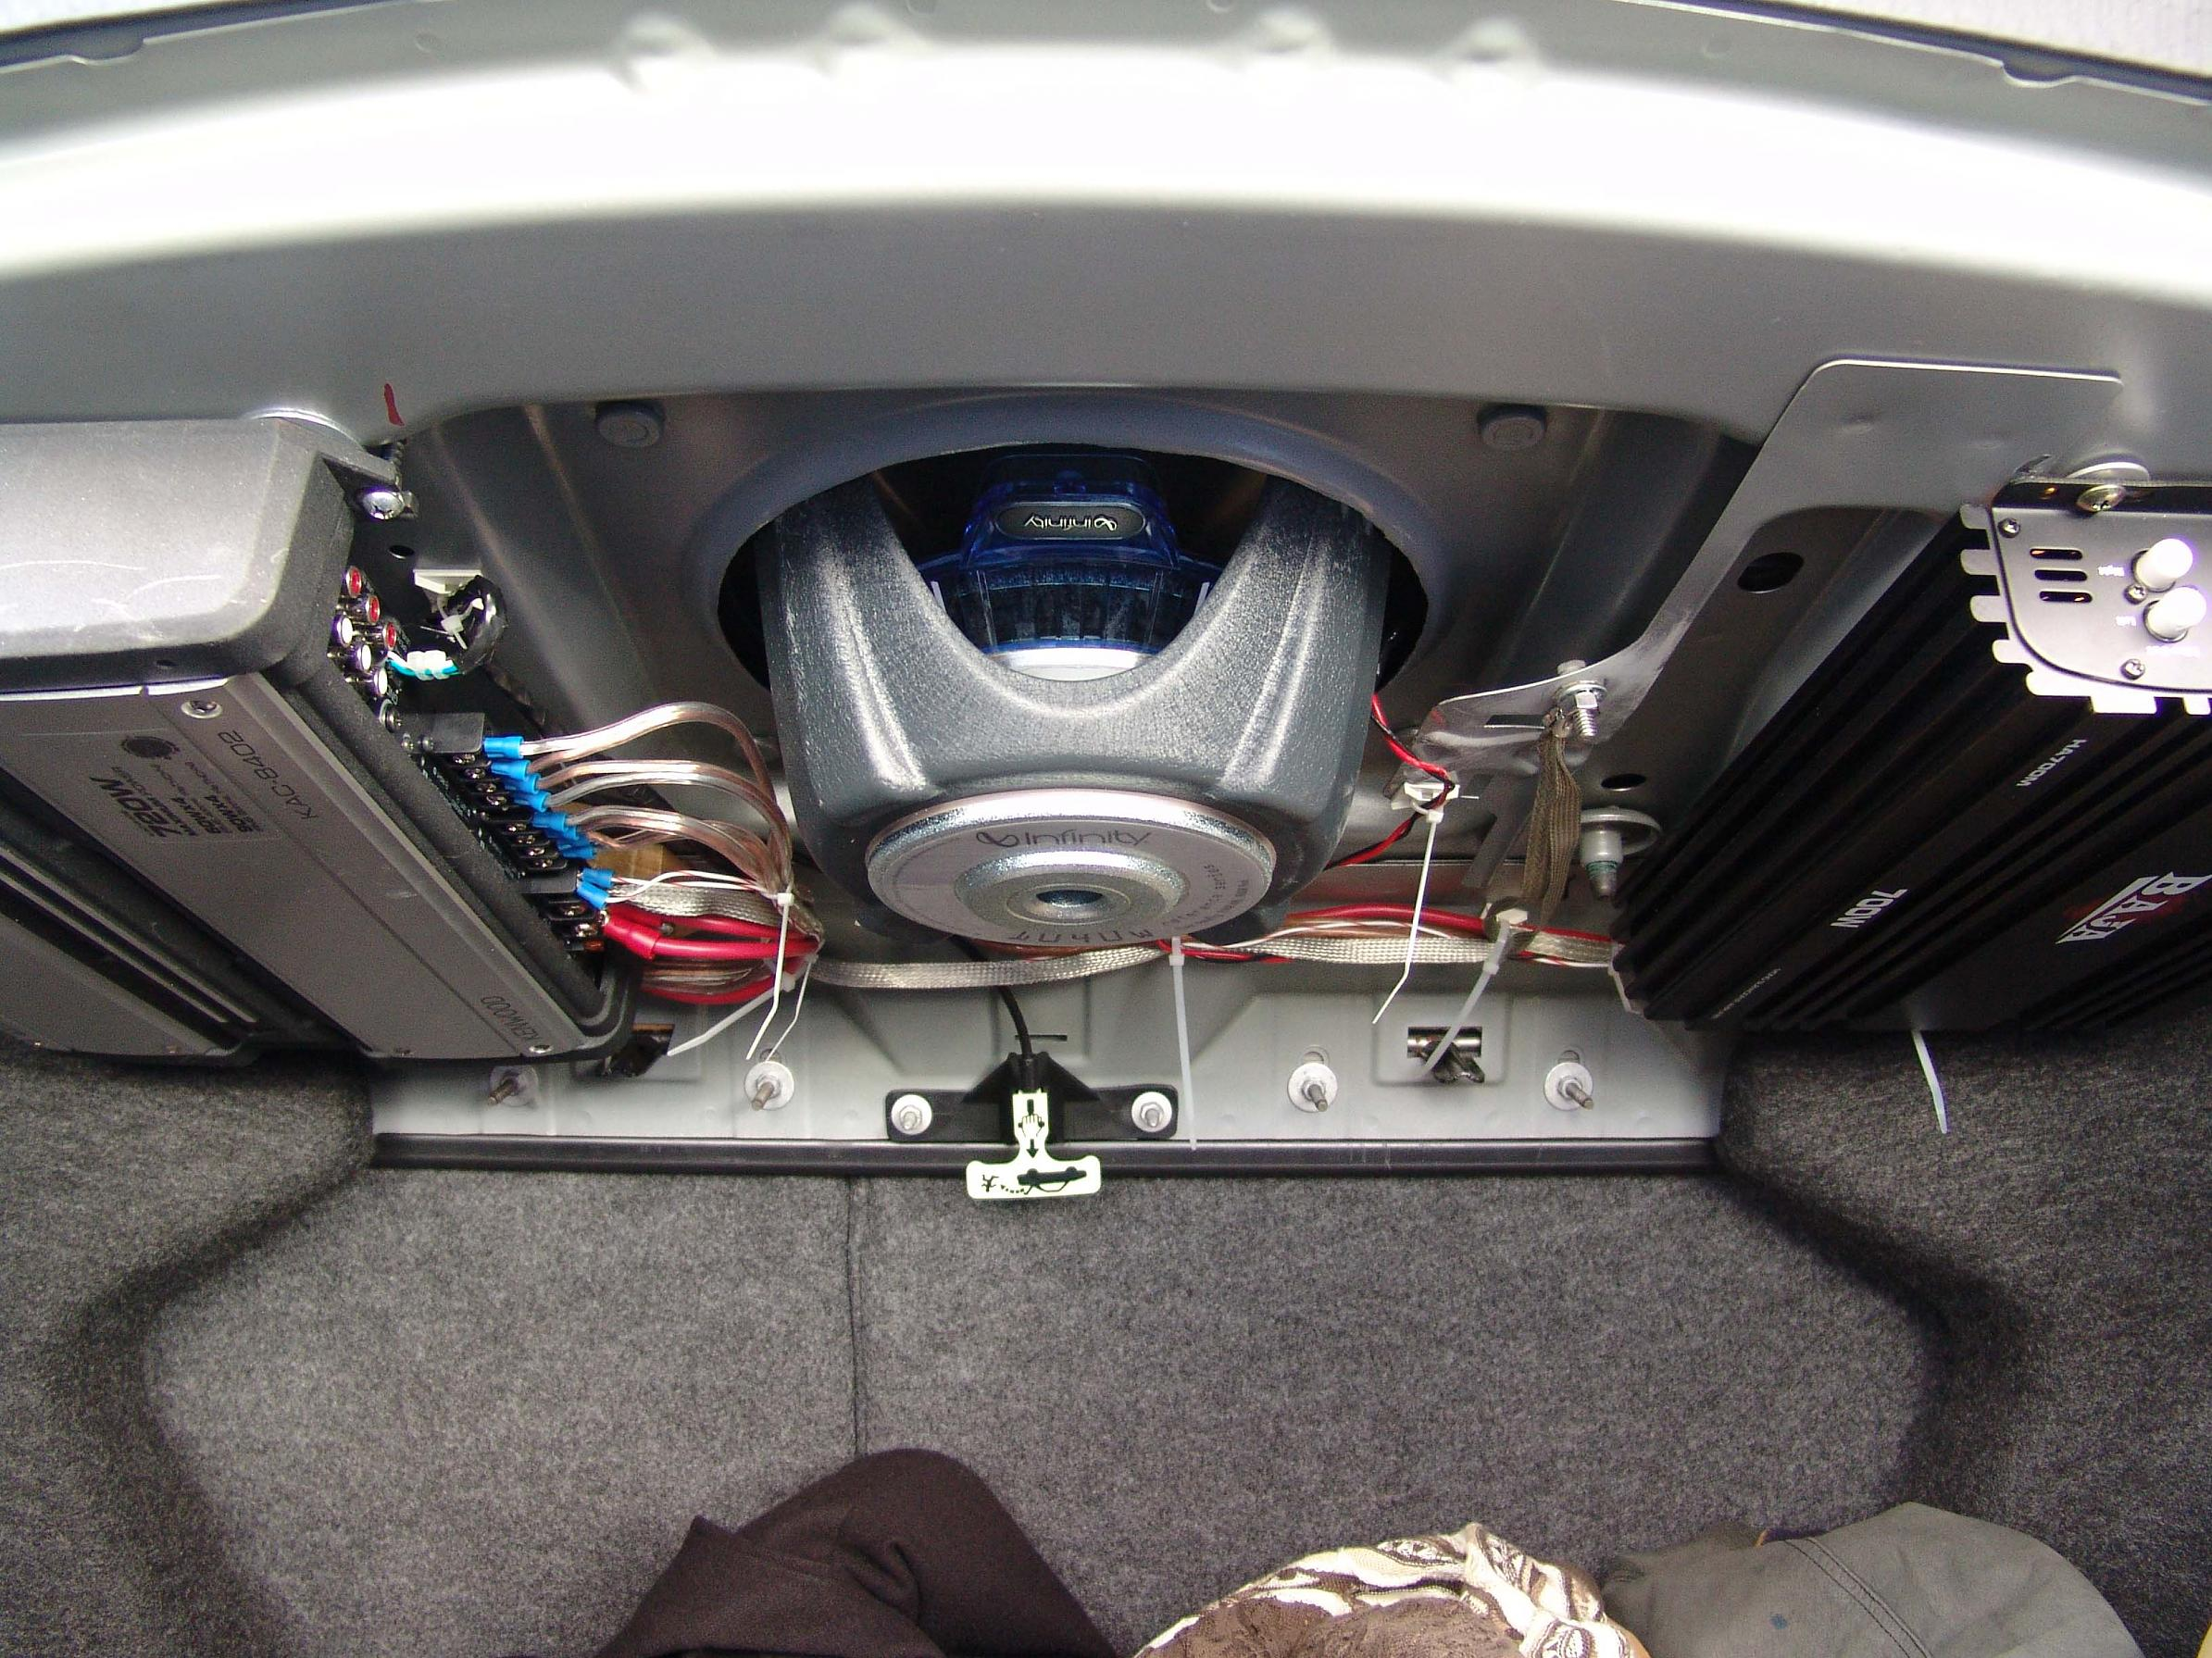 2004 Cadillac Cts Rear Deck Subwoofer Wiring Diagram from static-cdn.imageservice.cloud